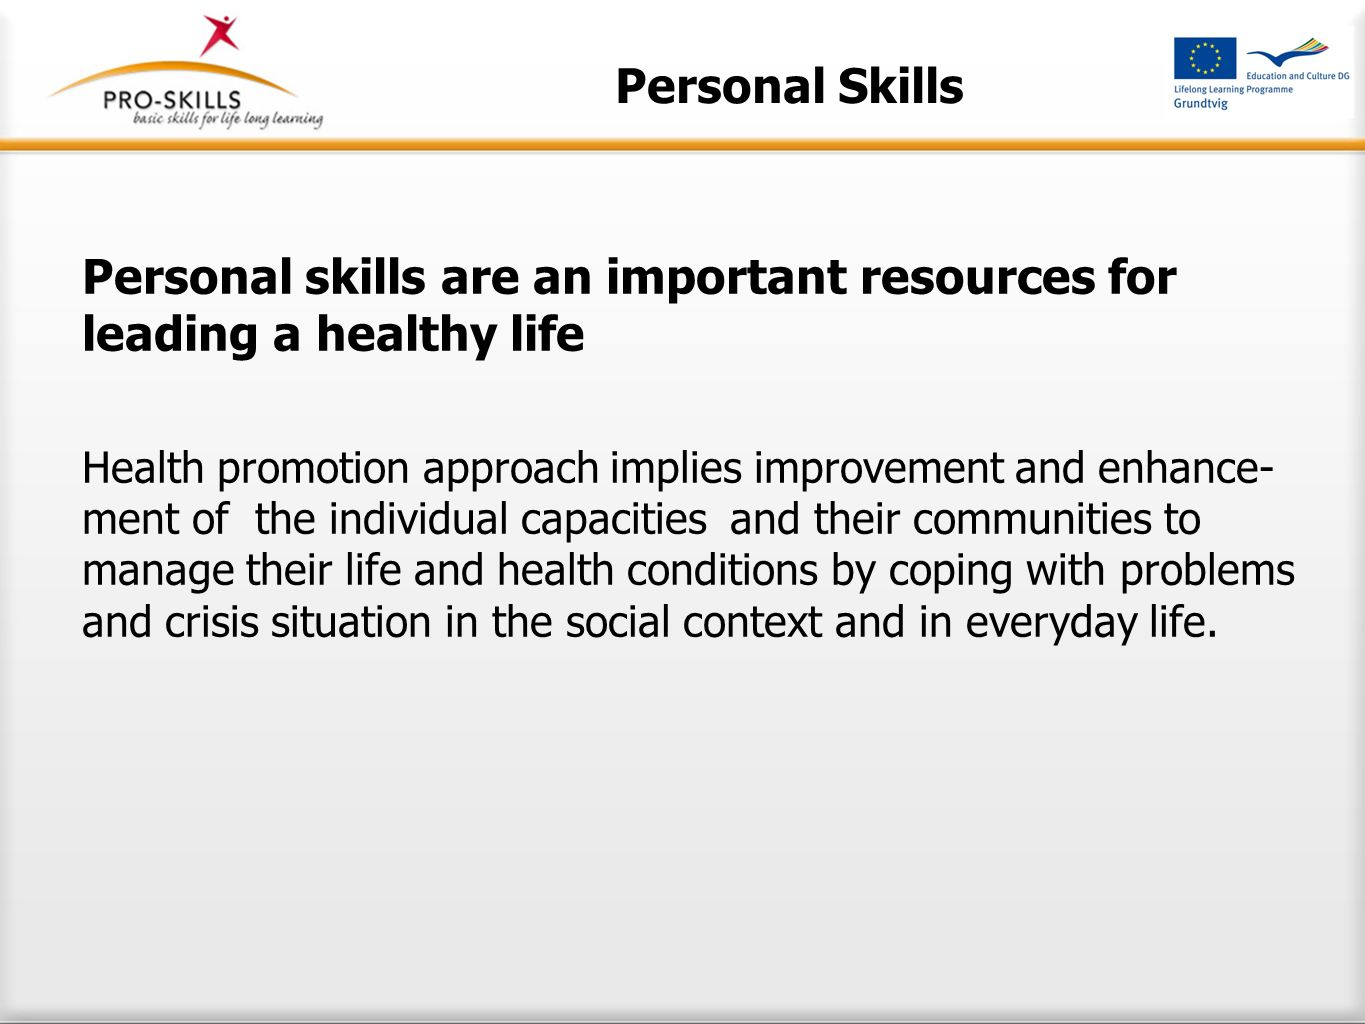 Personal Skills Personal skills are an important resources for leading a healthy life Health promotion approach implies improvement and enhance- ment of the individual capacities and their communities to manage their life and health conditions by coping with problems and crisis situation in the social context and in everyday life.